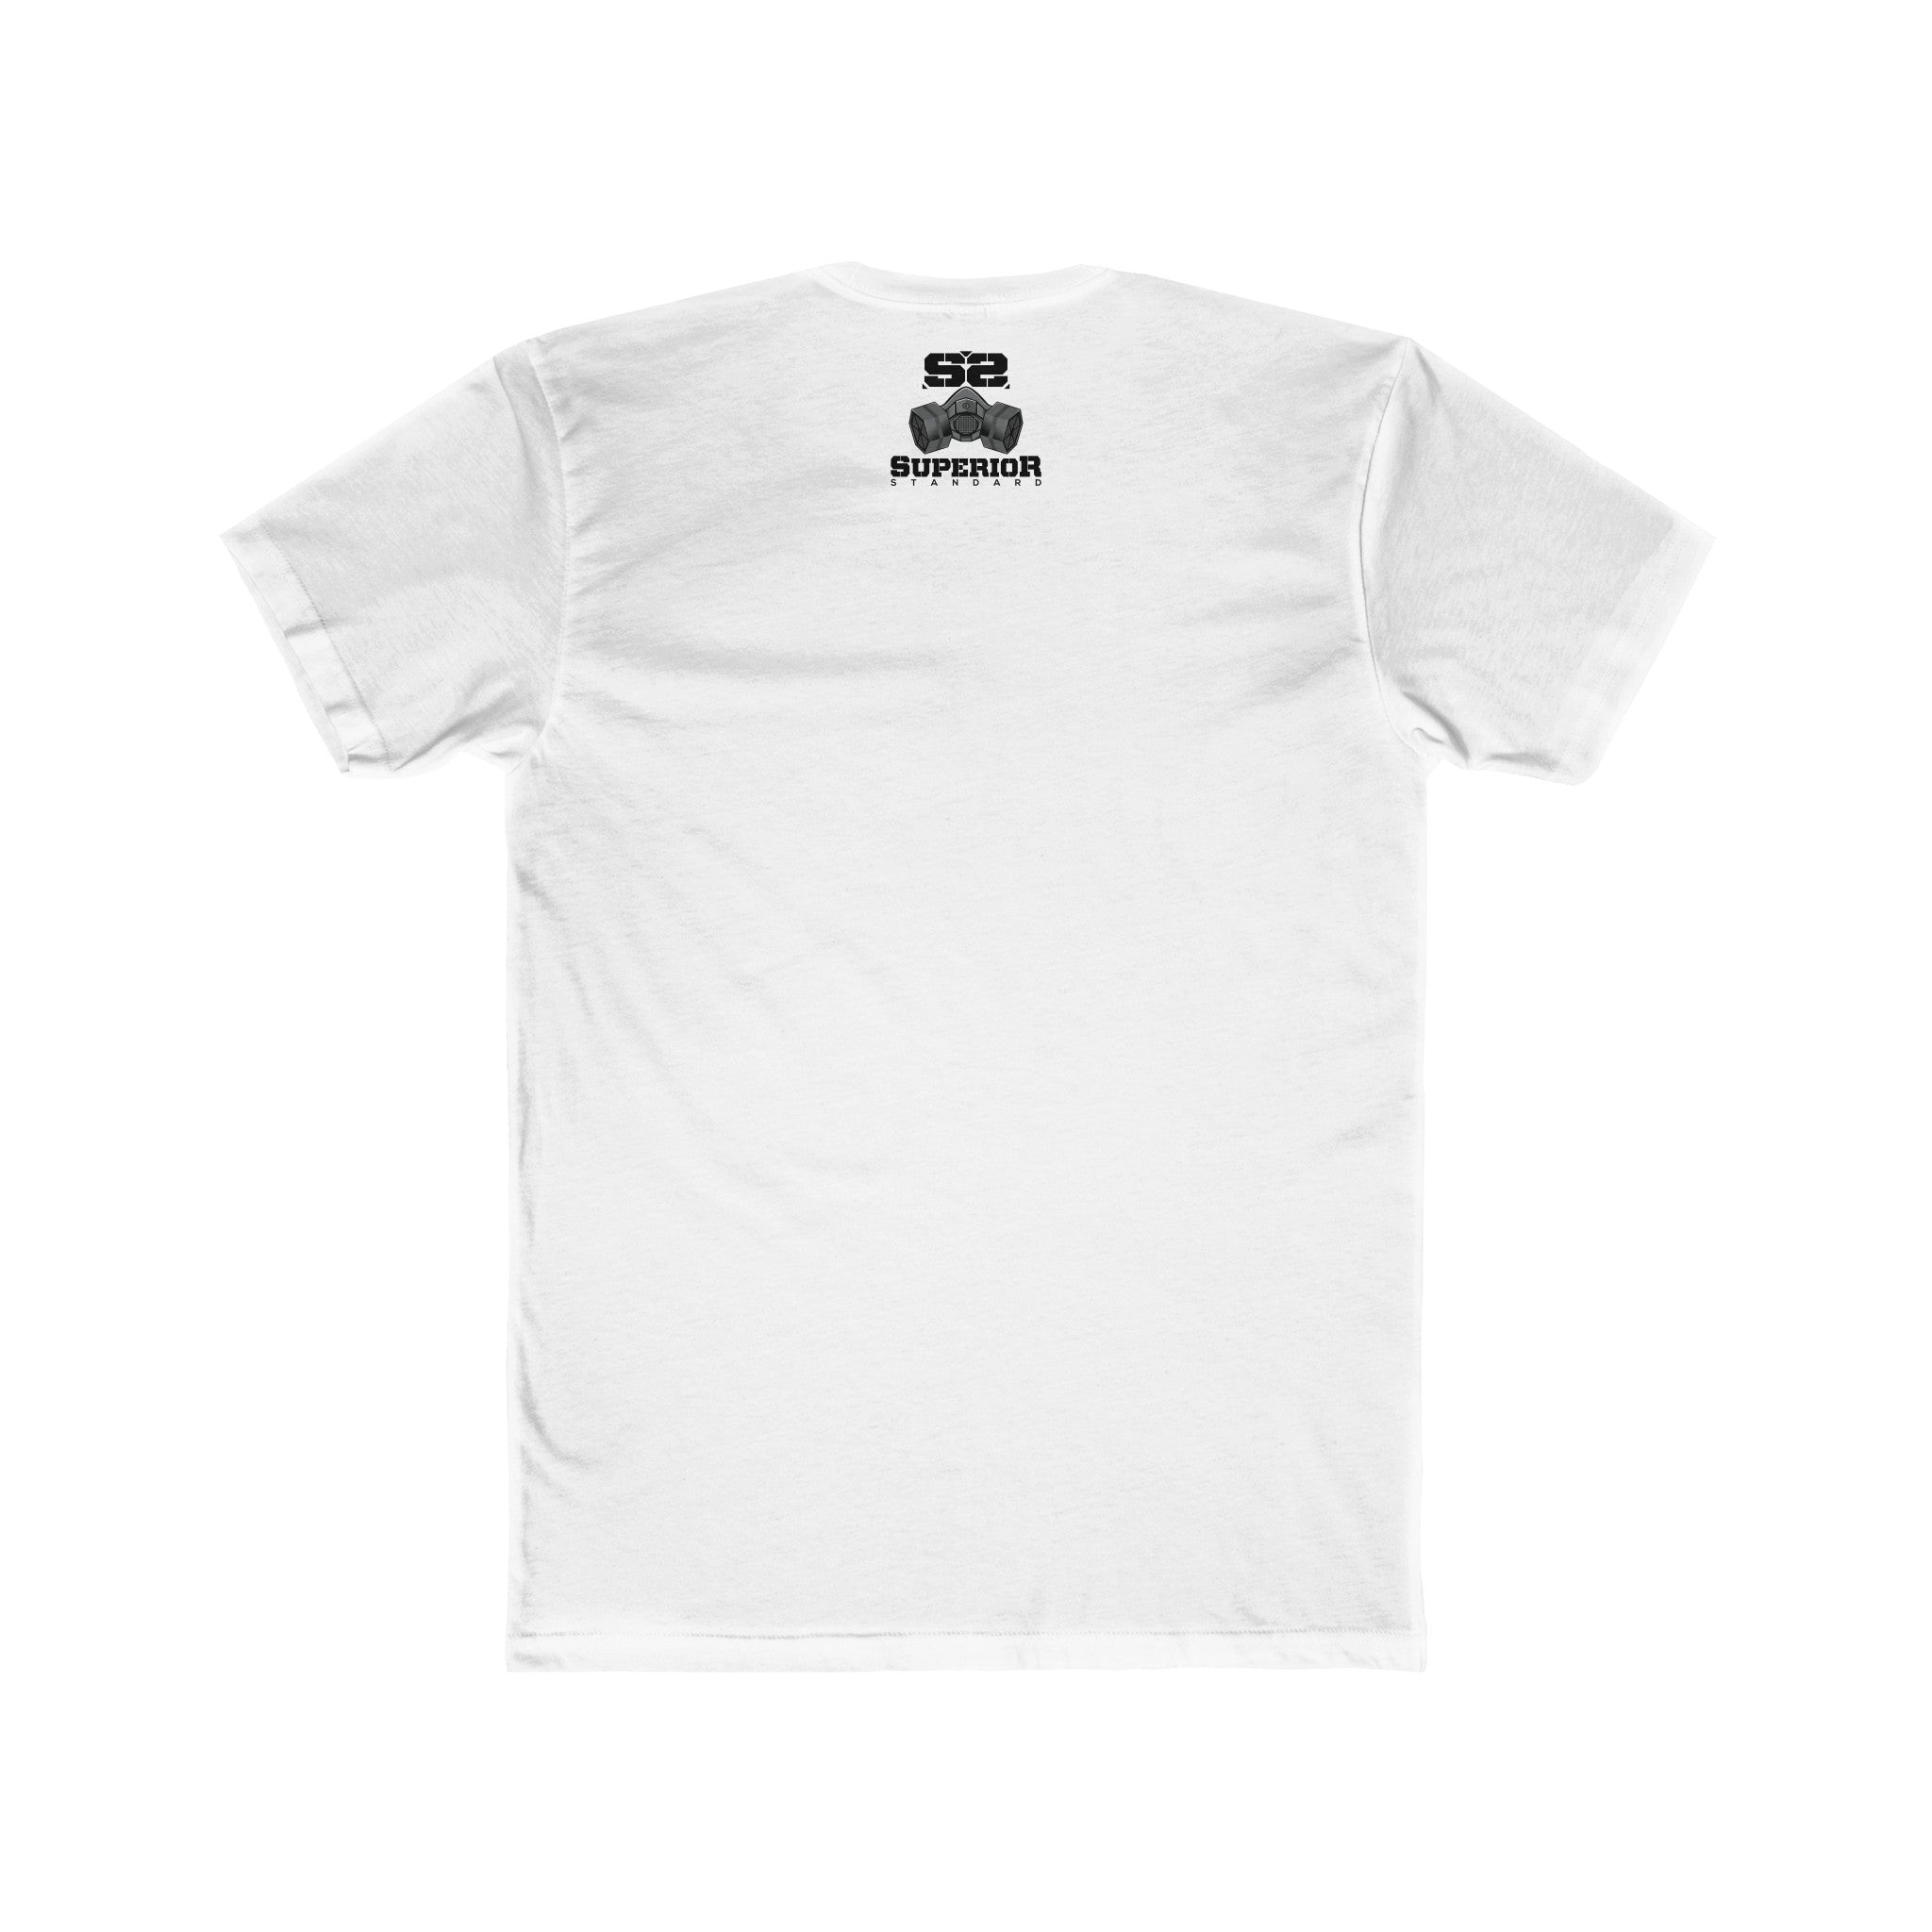 Men's Premium Fit Crew T-Shirt - Superior Standard